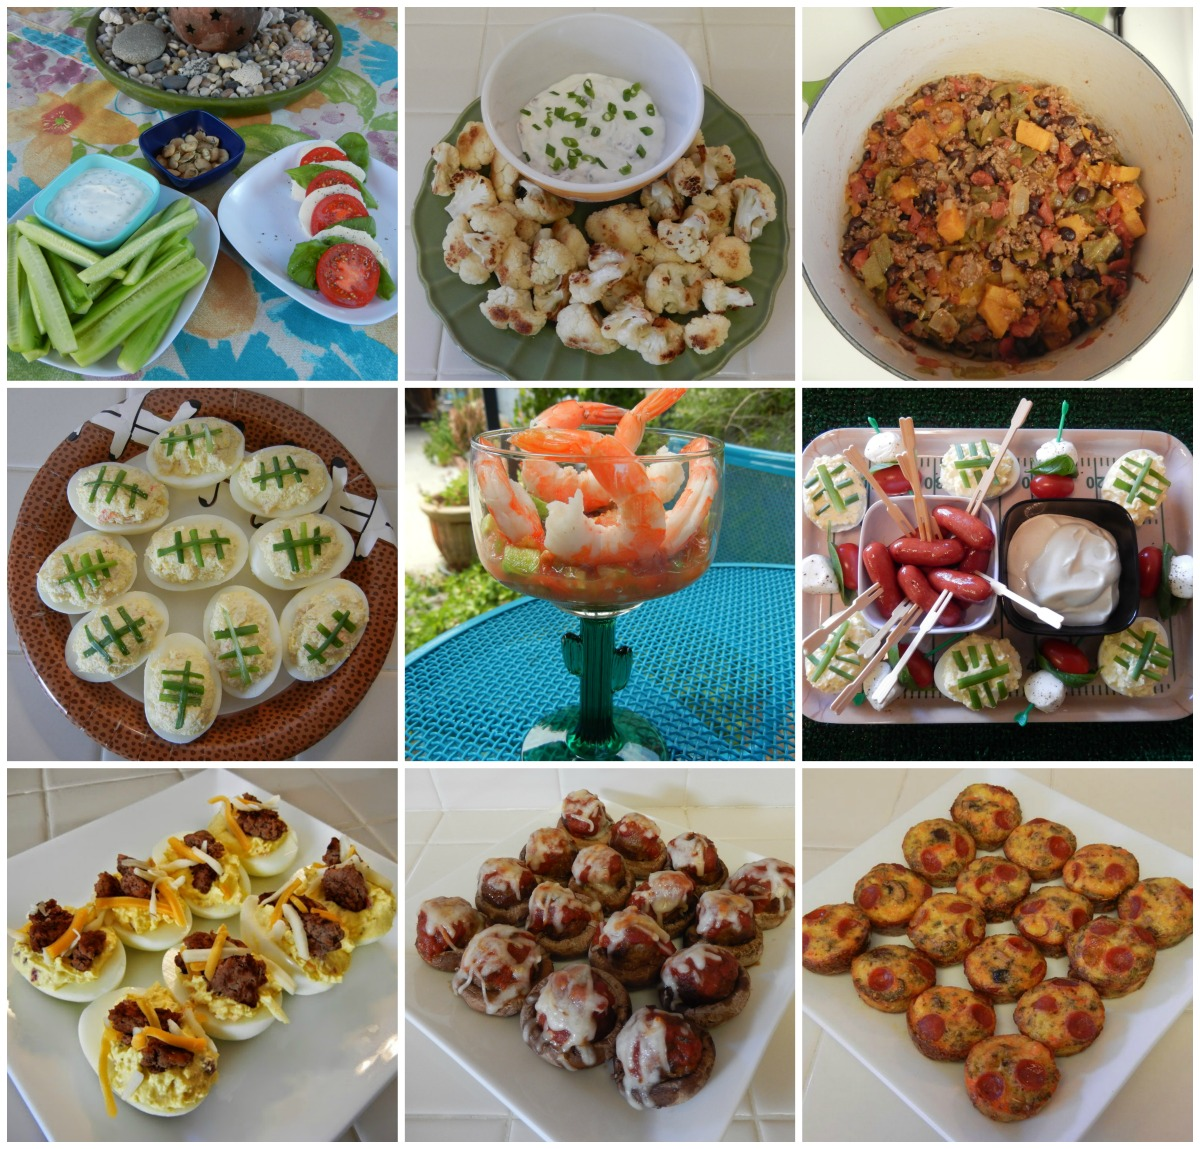 Theworldaccordingtoeggface healthy super bowl recipes and ideas low carb bariatric surgery weight loss fitness friendly forumfinder Image collections